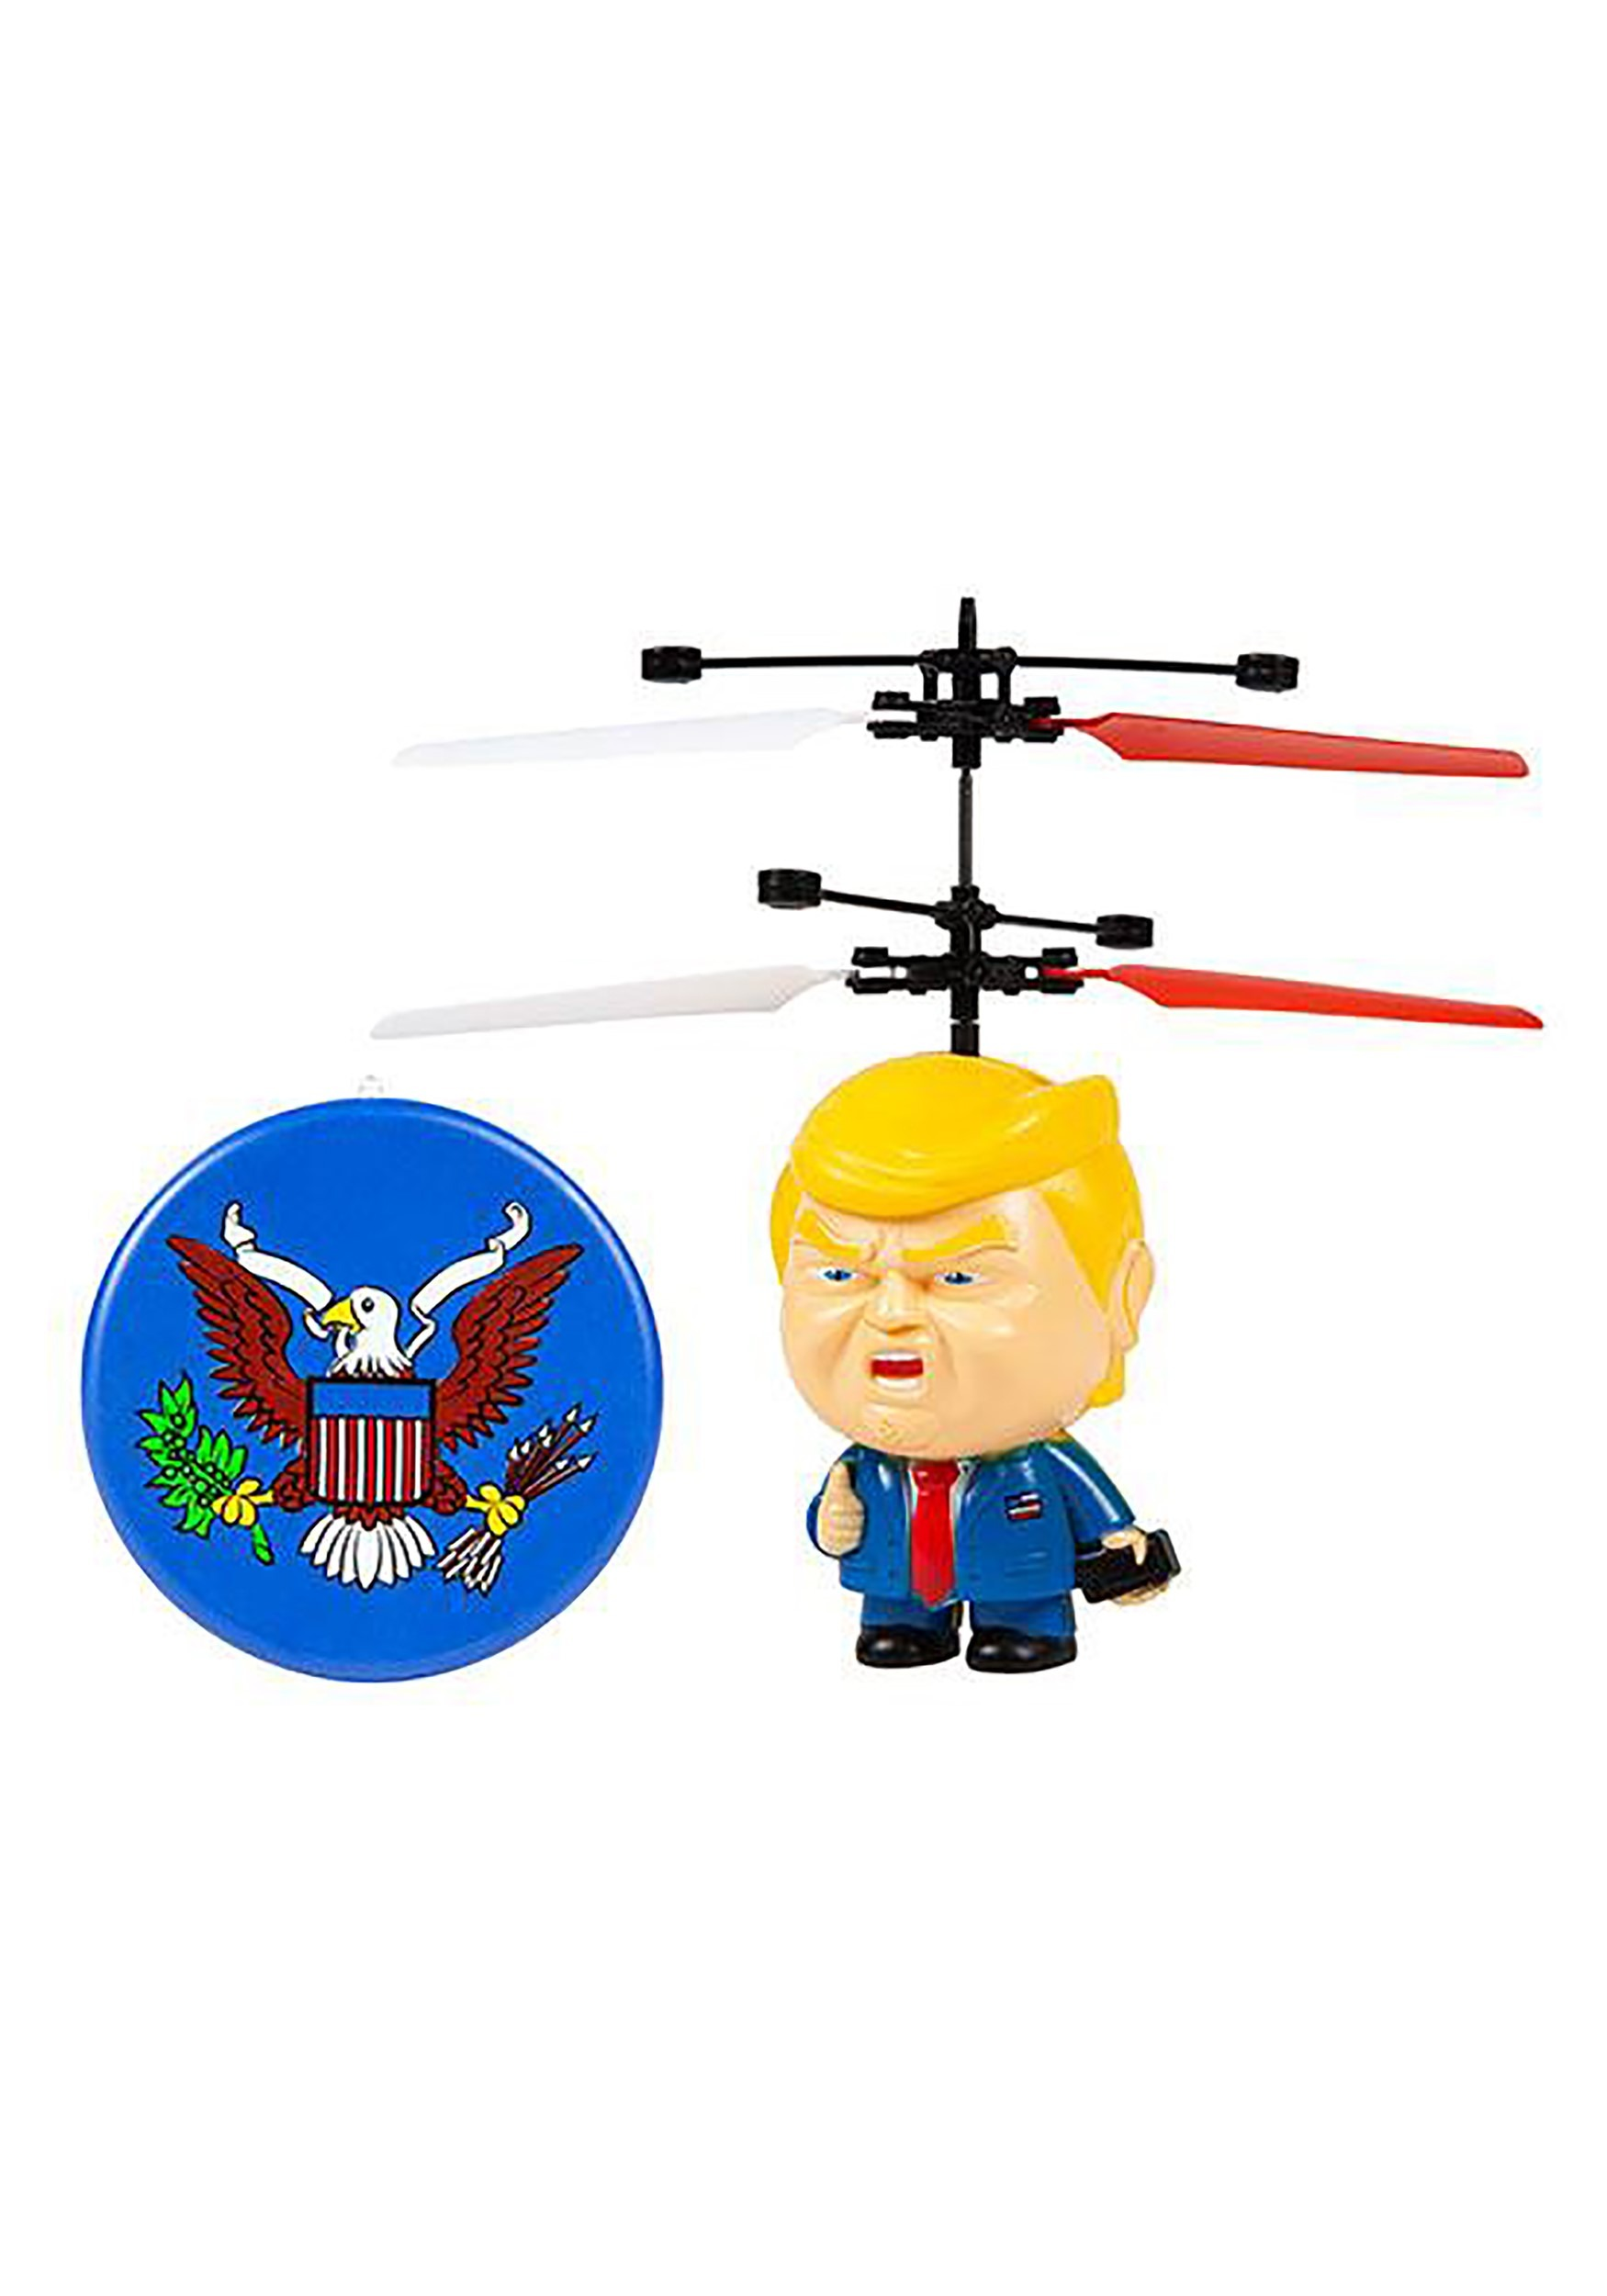 Donald Trump Motion Sensing 3.5 Inch UFO Remote Control Helicopter